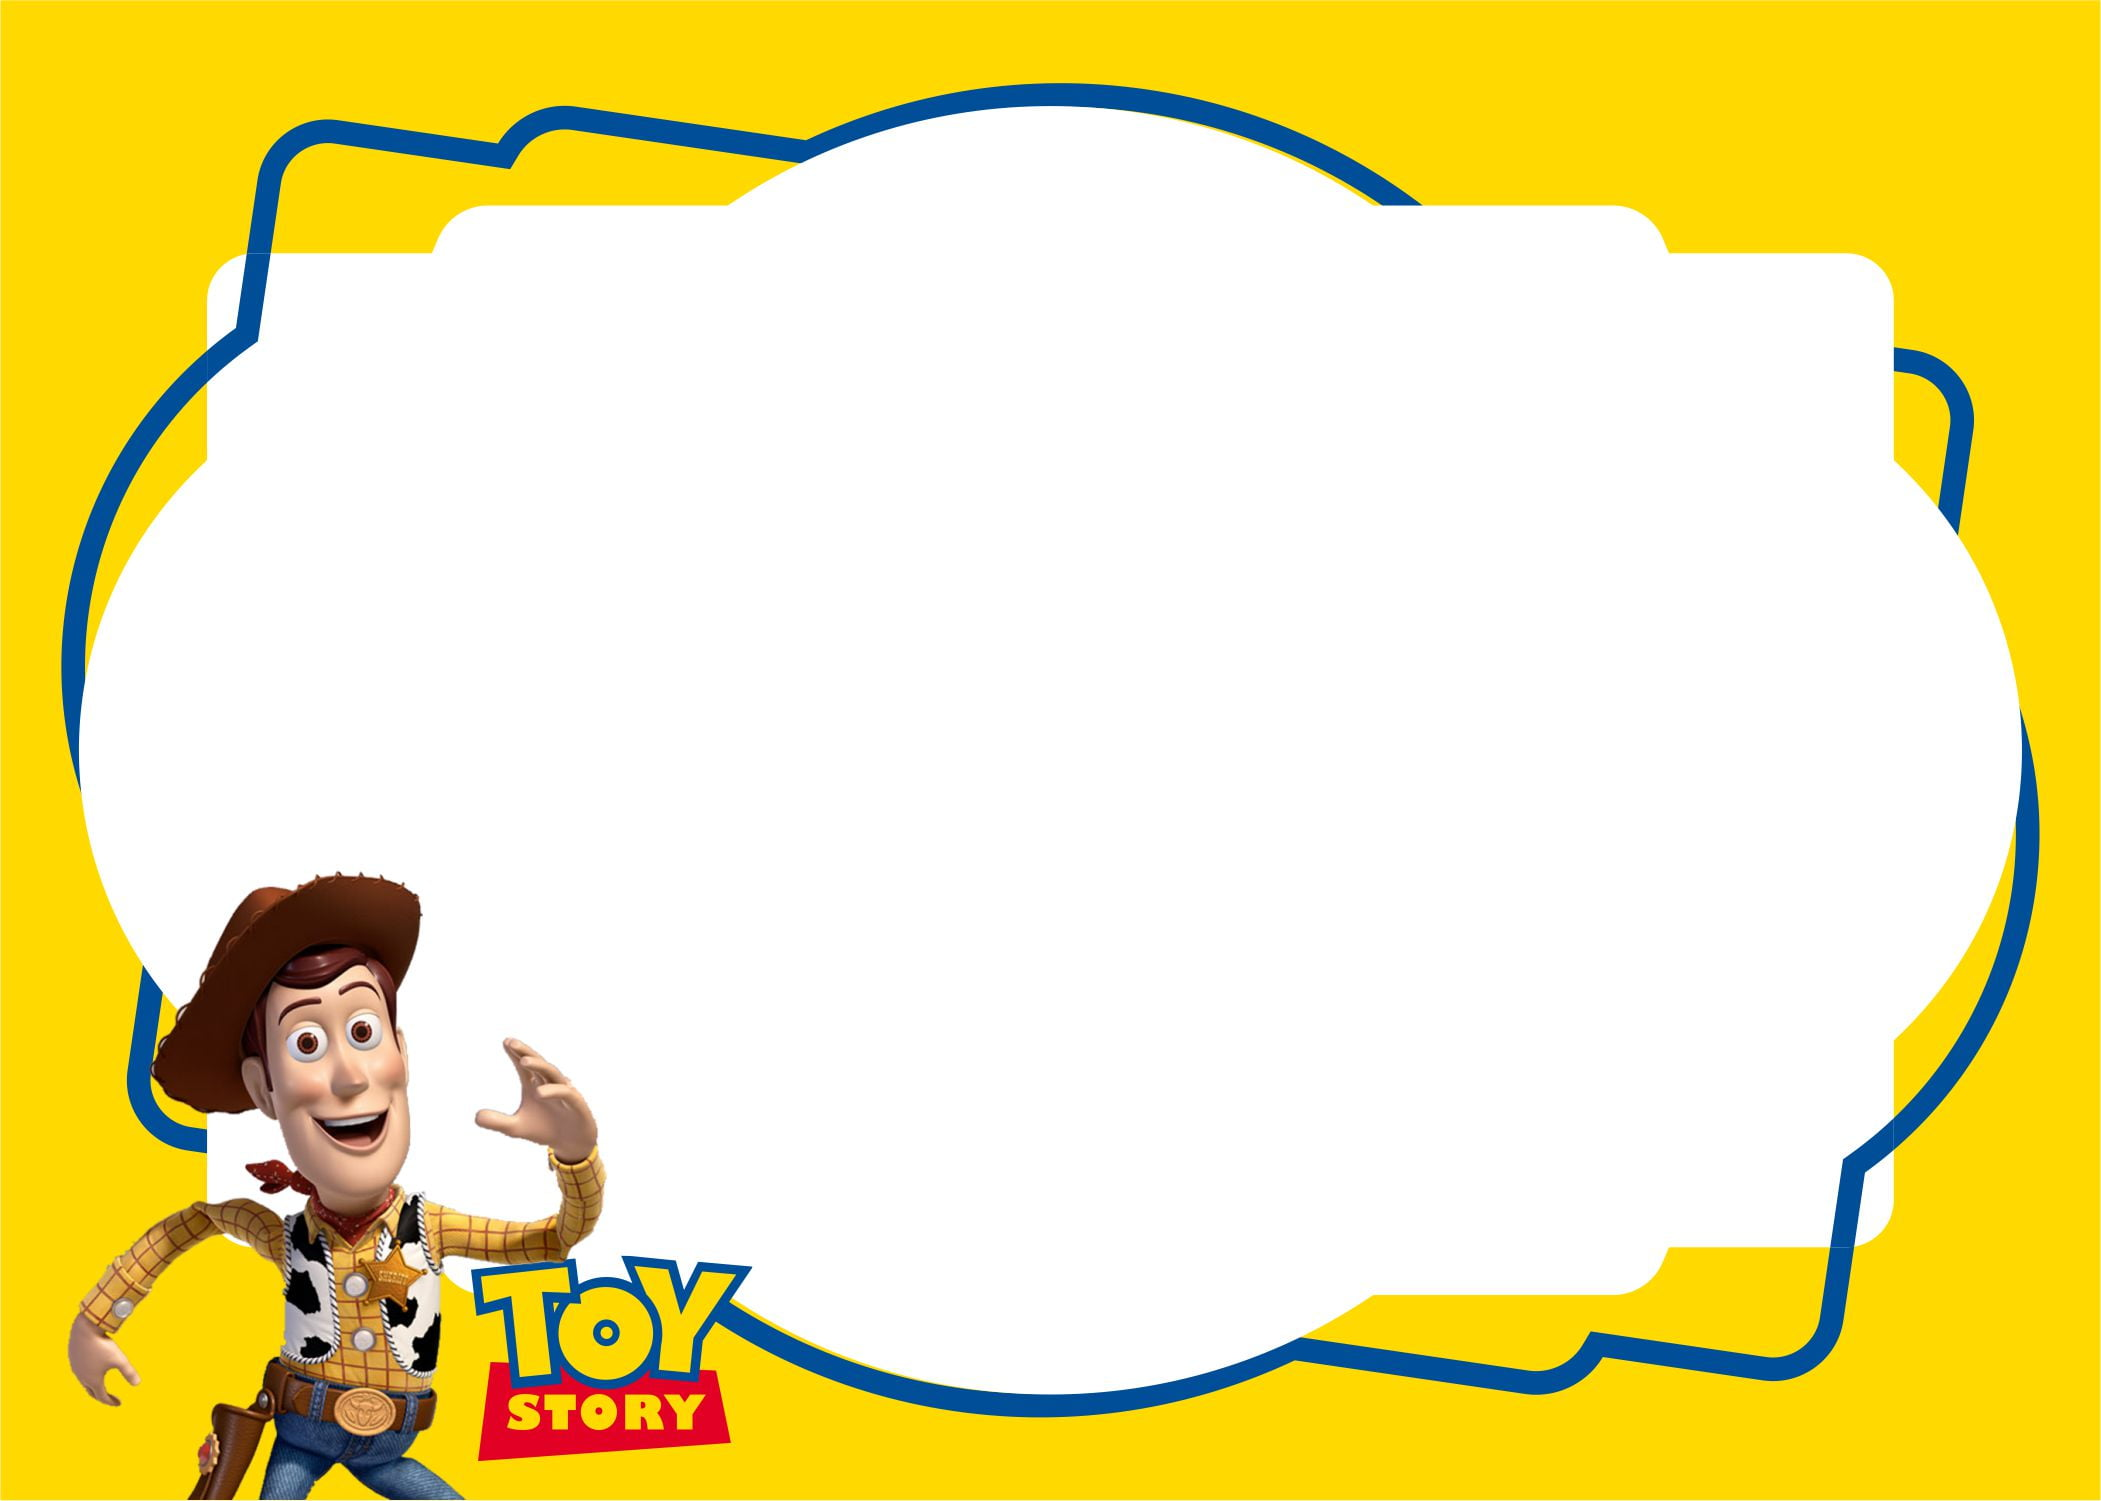 toy story birthday party kits template